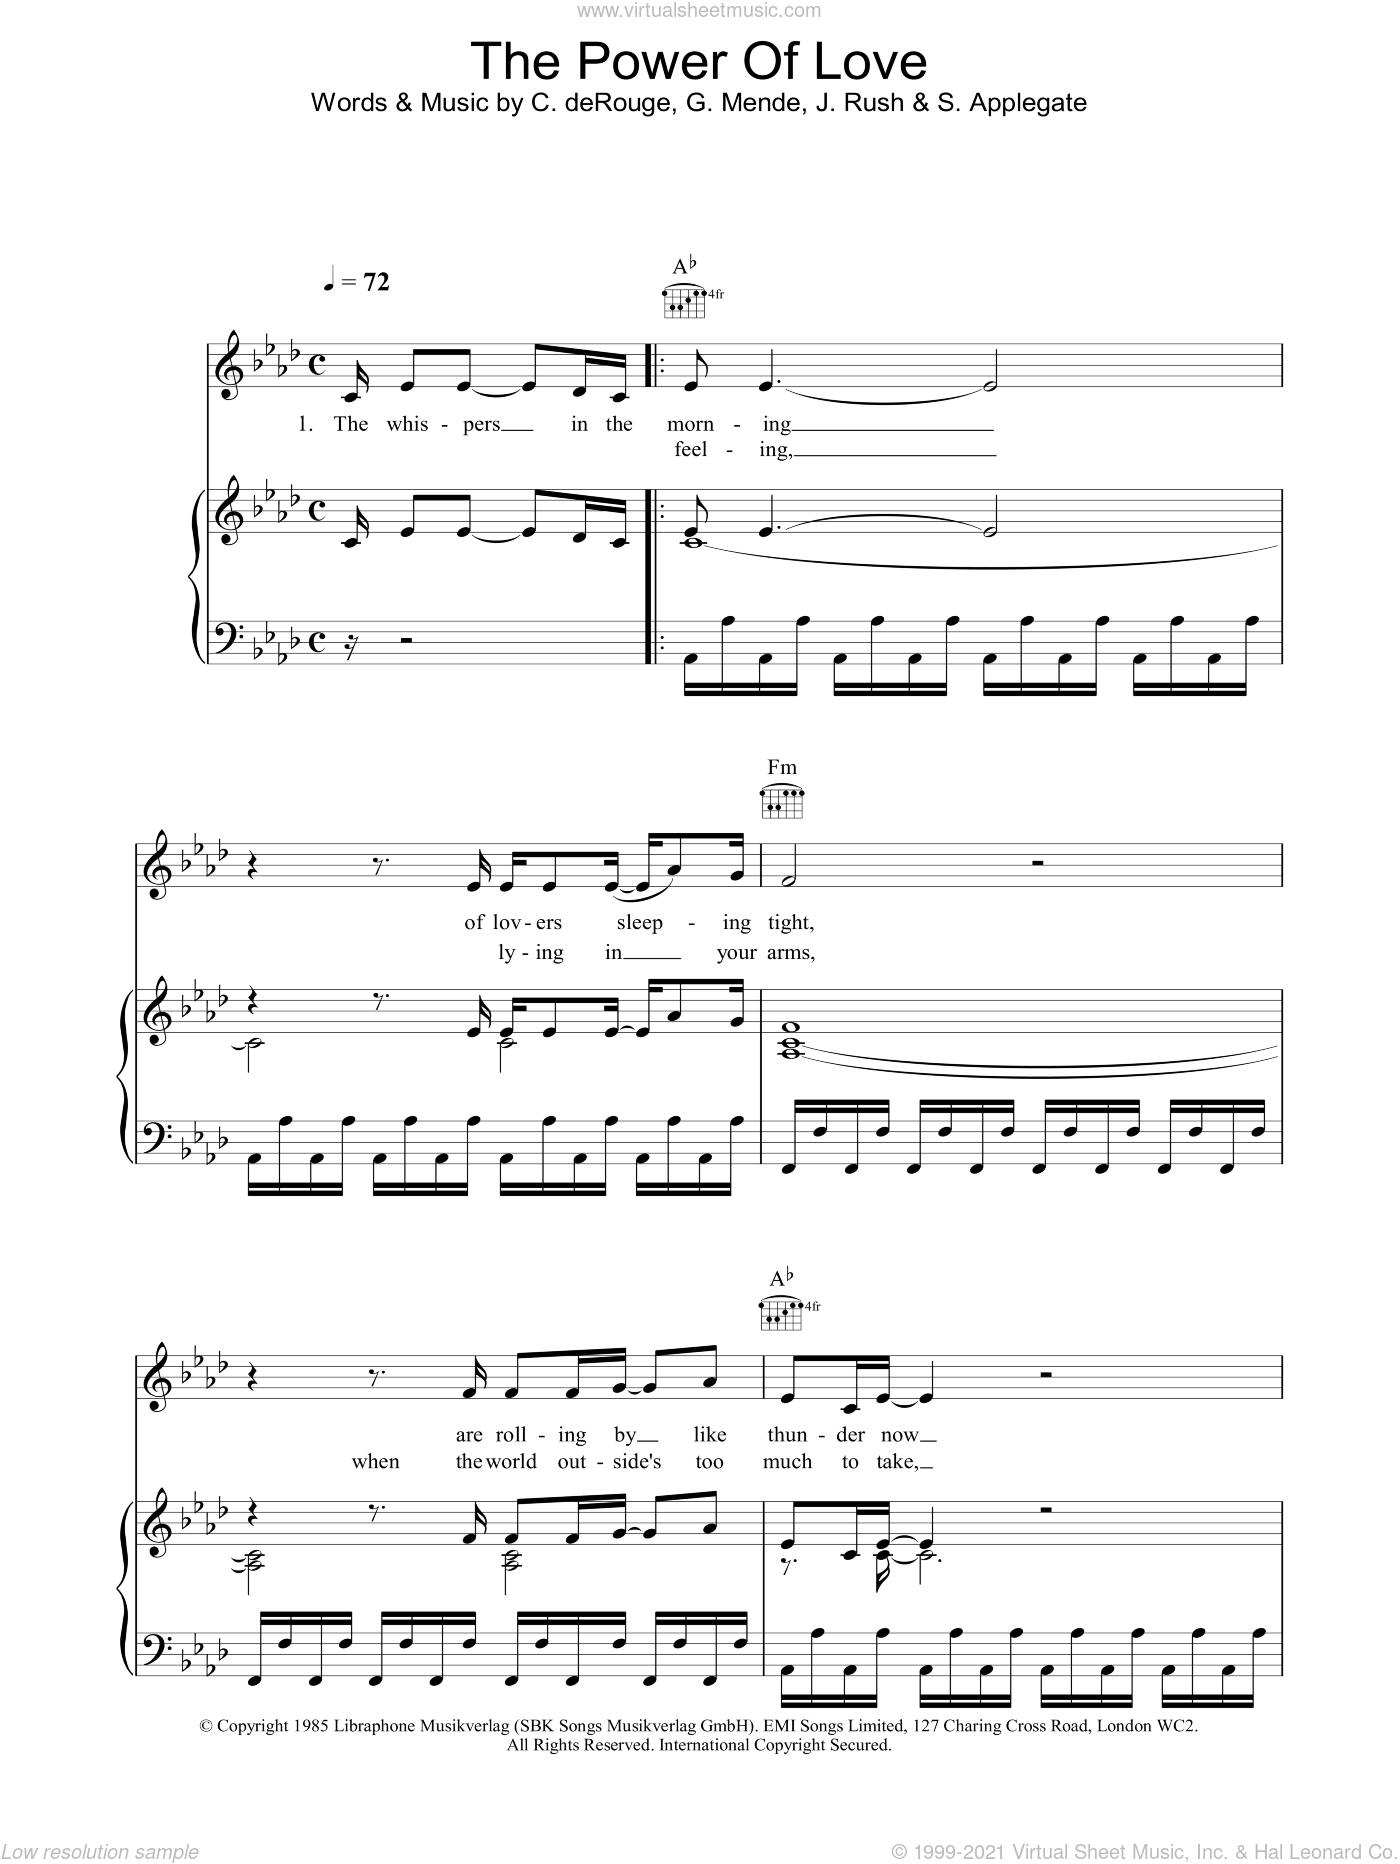 The Power Of Love sheet music for voice, piano or guitar by Celine Dion, Candy Derouge, David Foster, Gunther Mende, Jennifer Rush and Mary Susan Applegate, wedding score, intermediate skill level